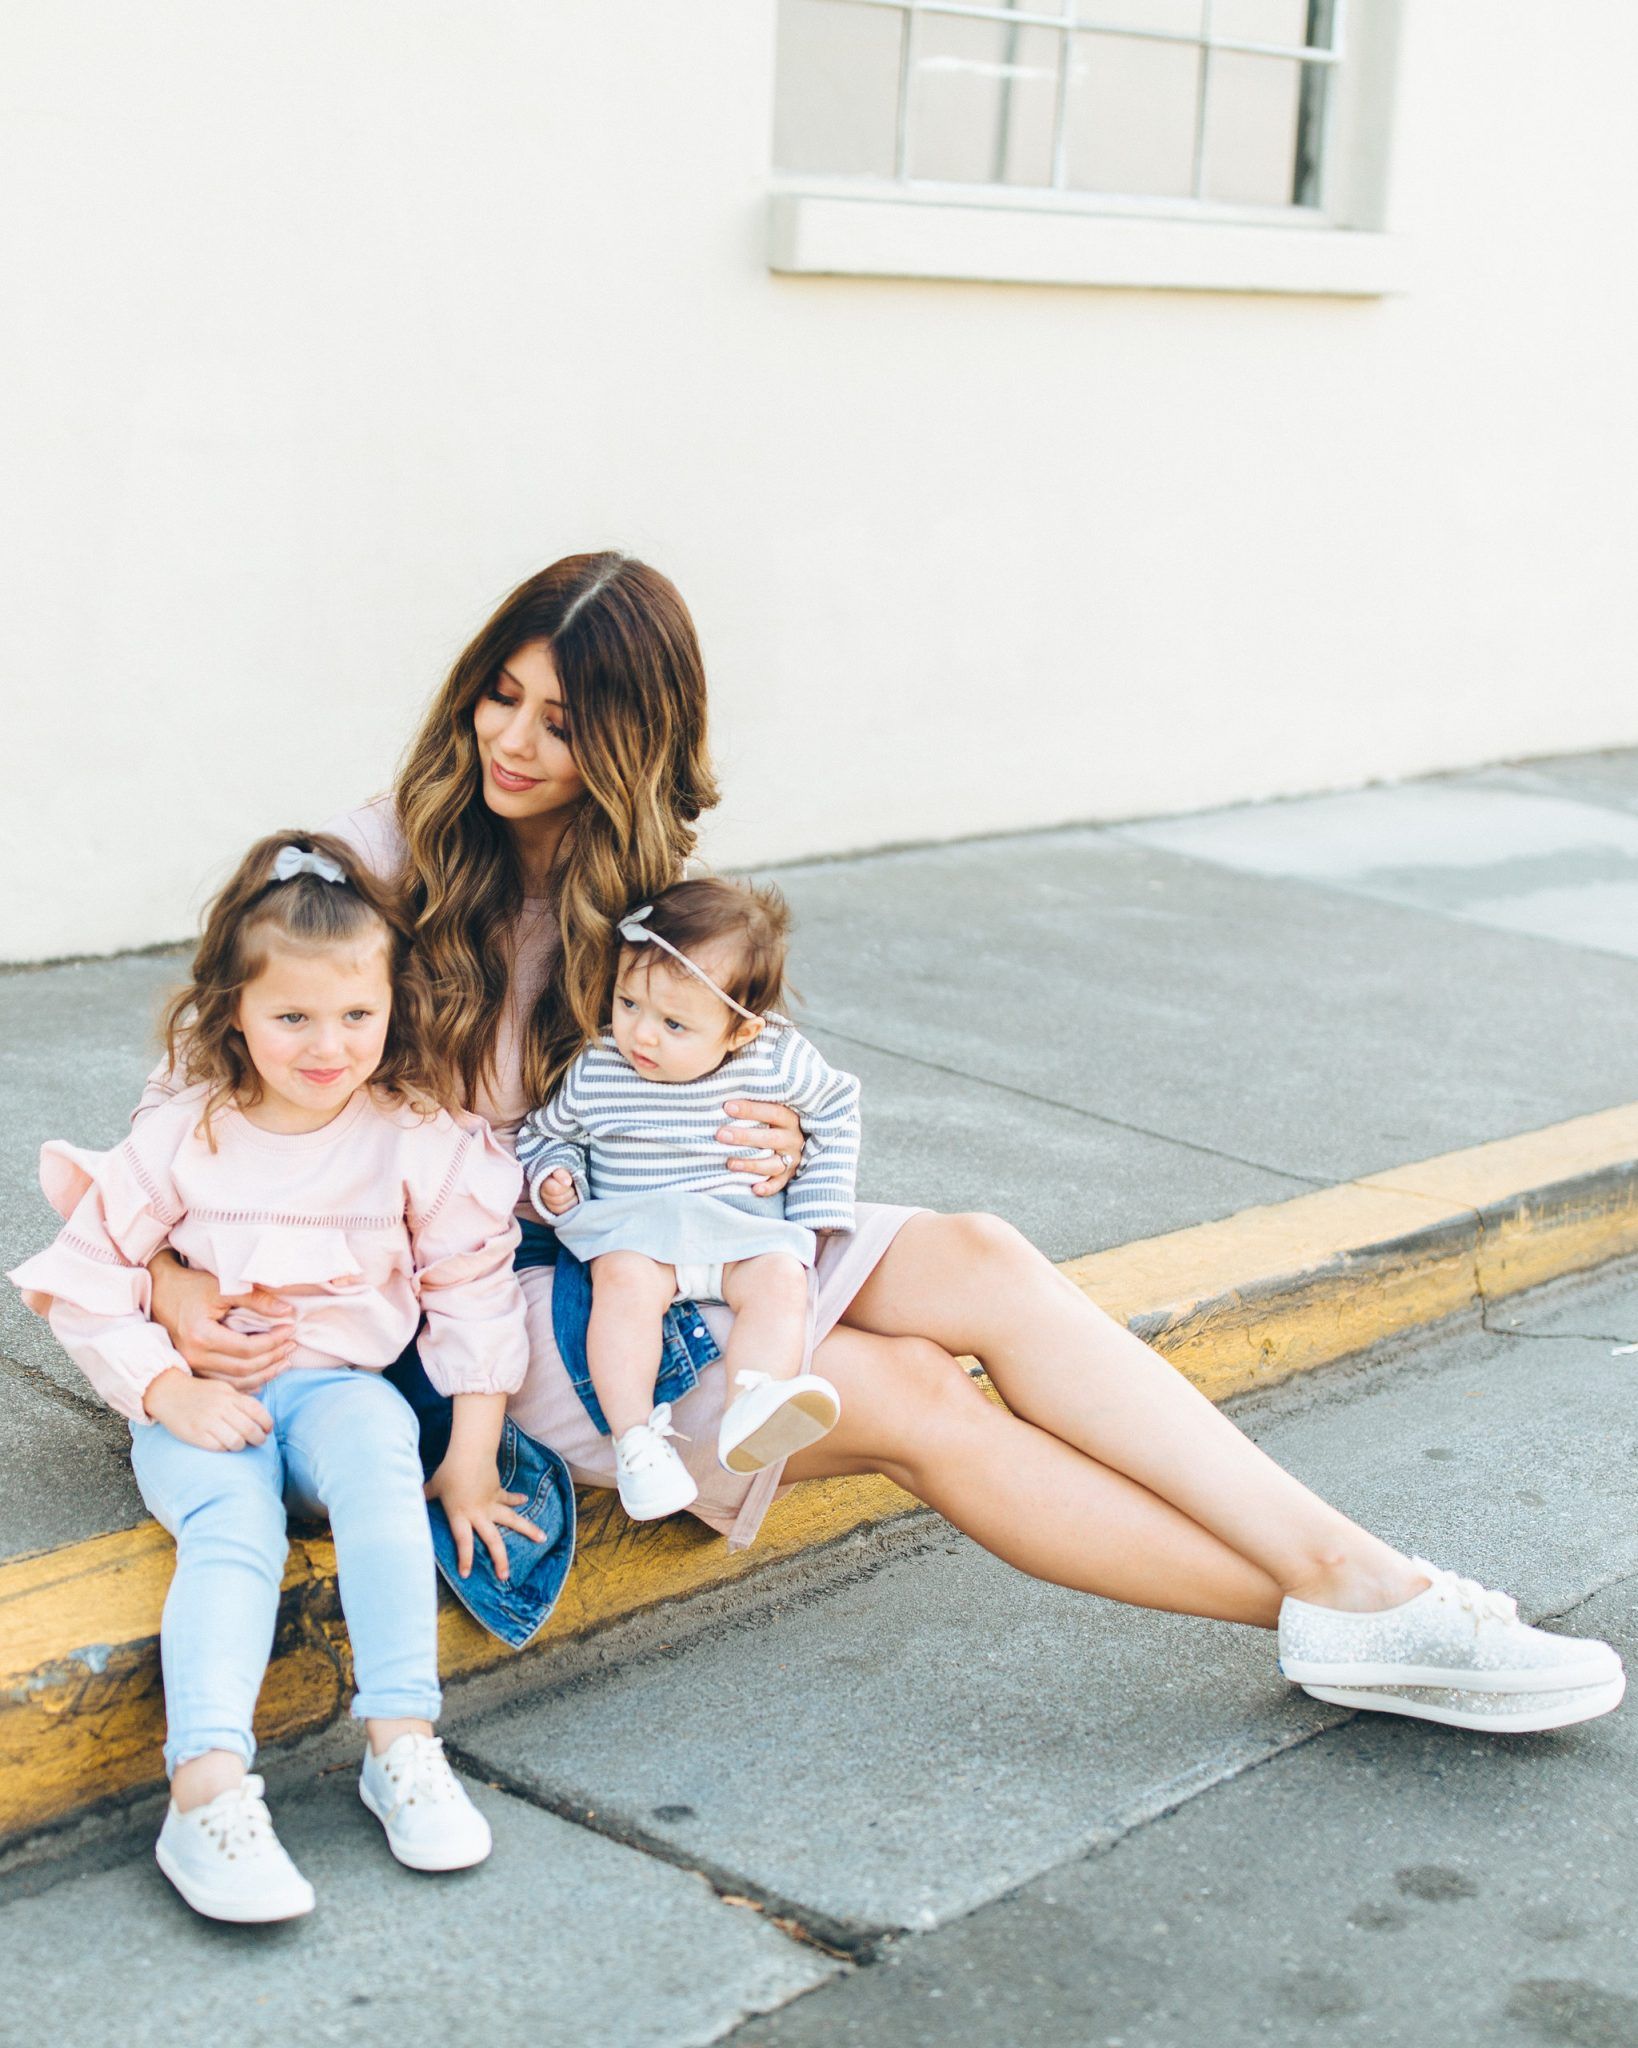 Matching, Keds and Kate Spade Sneakers, Momma and Daughter Matching, Little Girls Gift Guide